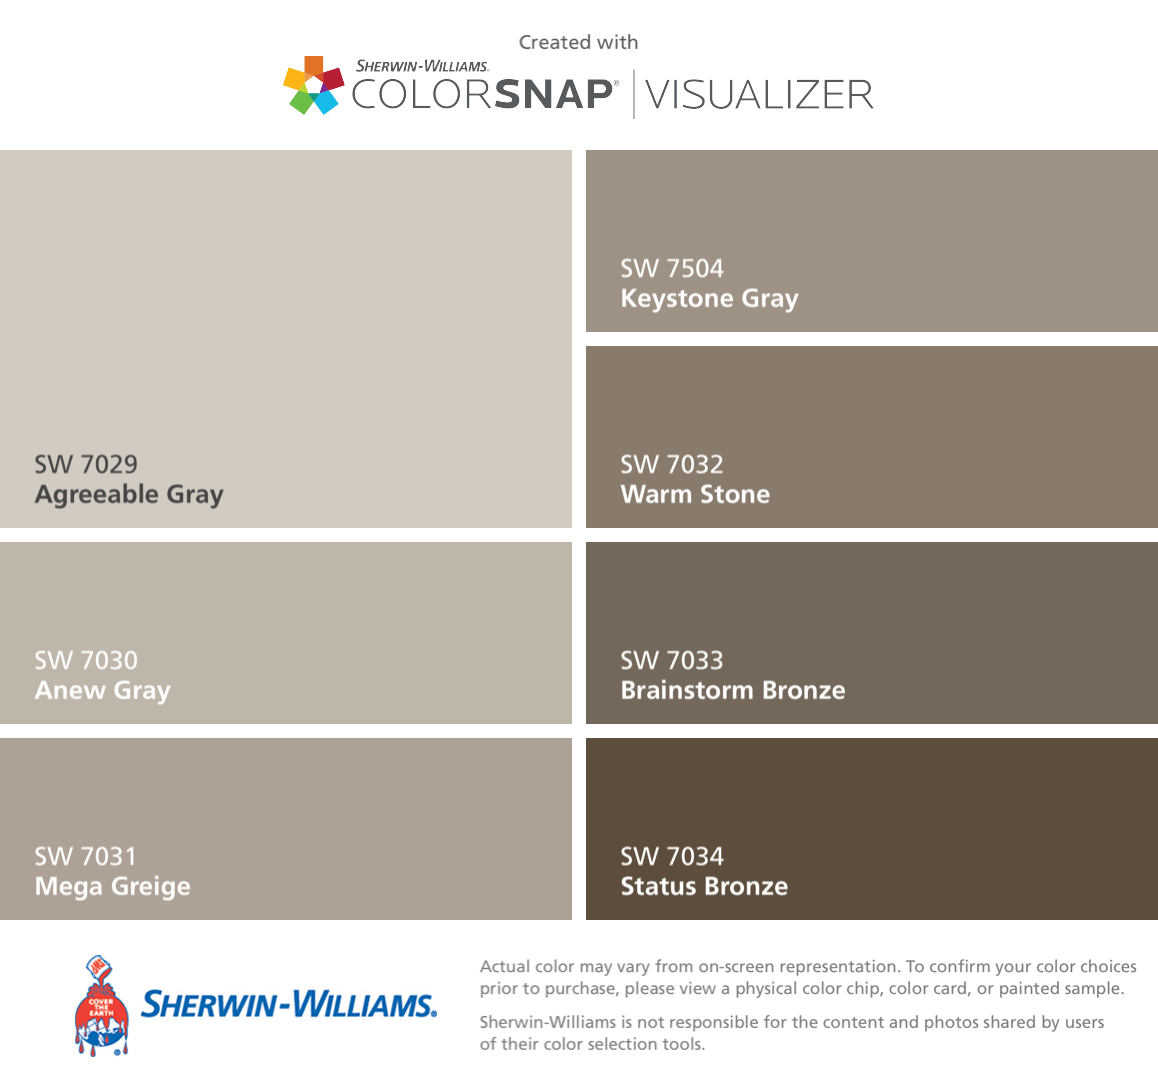 I Found These Colors With Colorsnap Visualizer For Iphone By Sherwin Williams Agreeable Gray